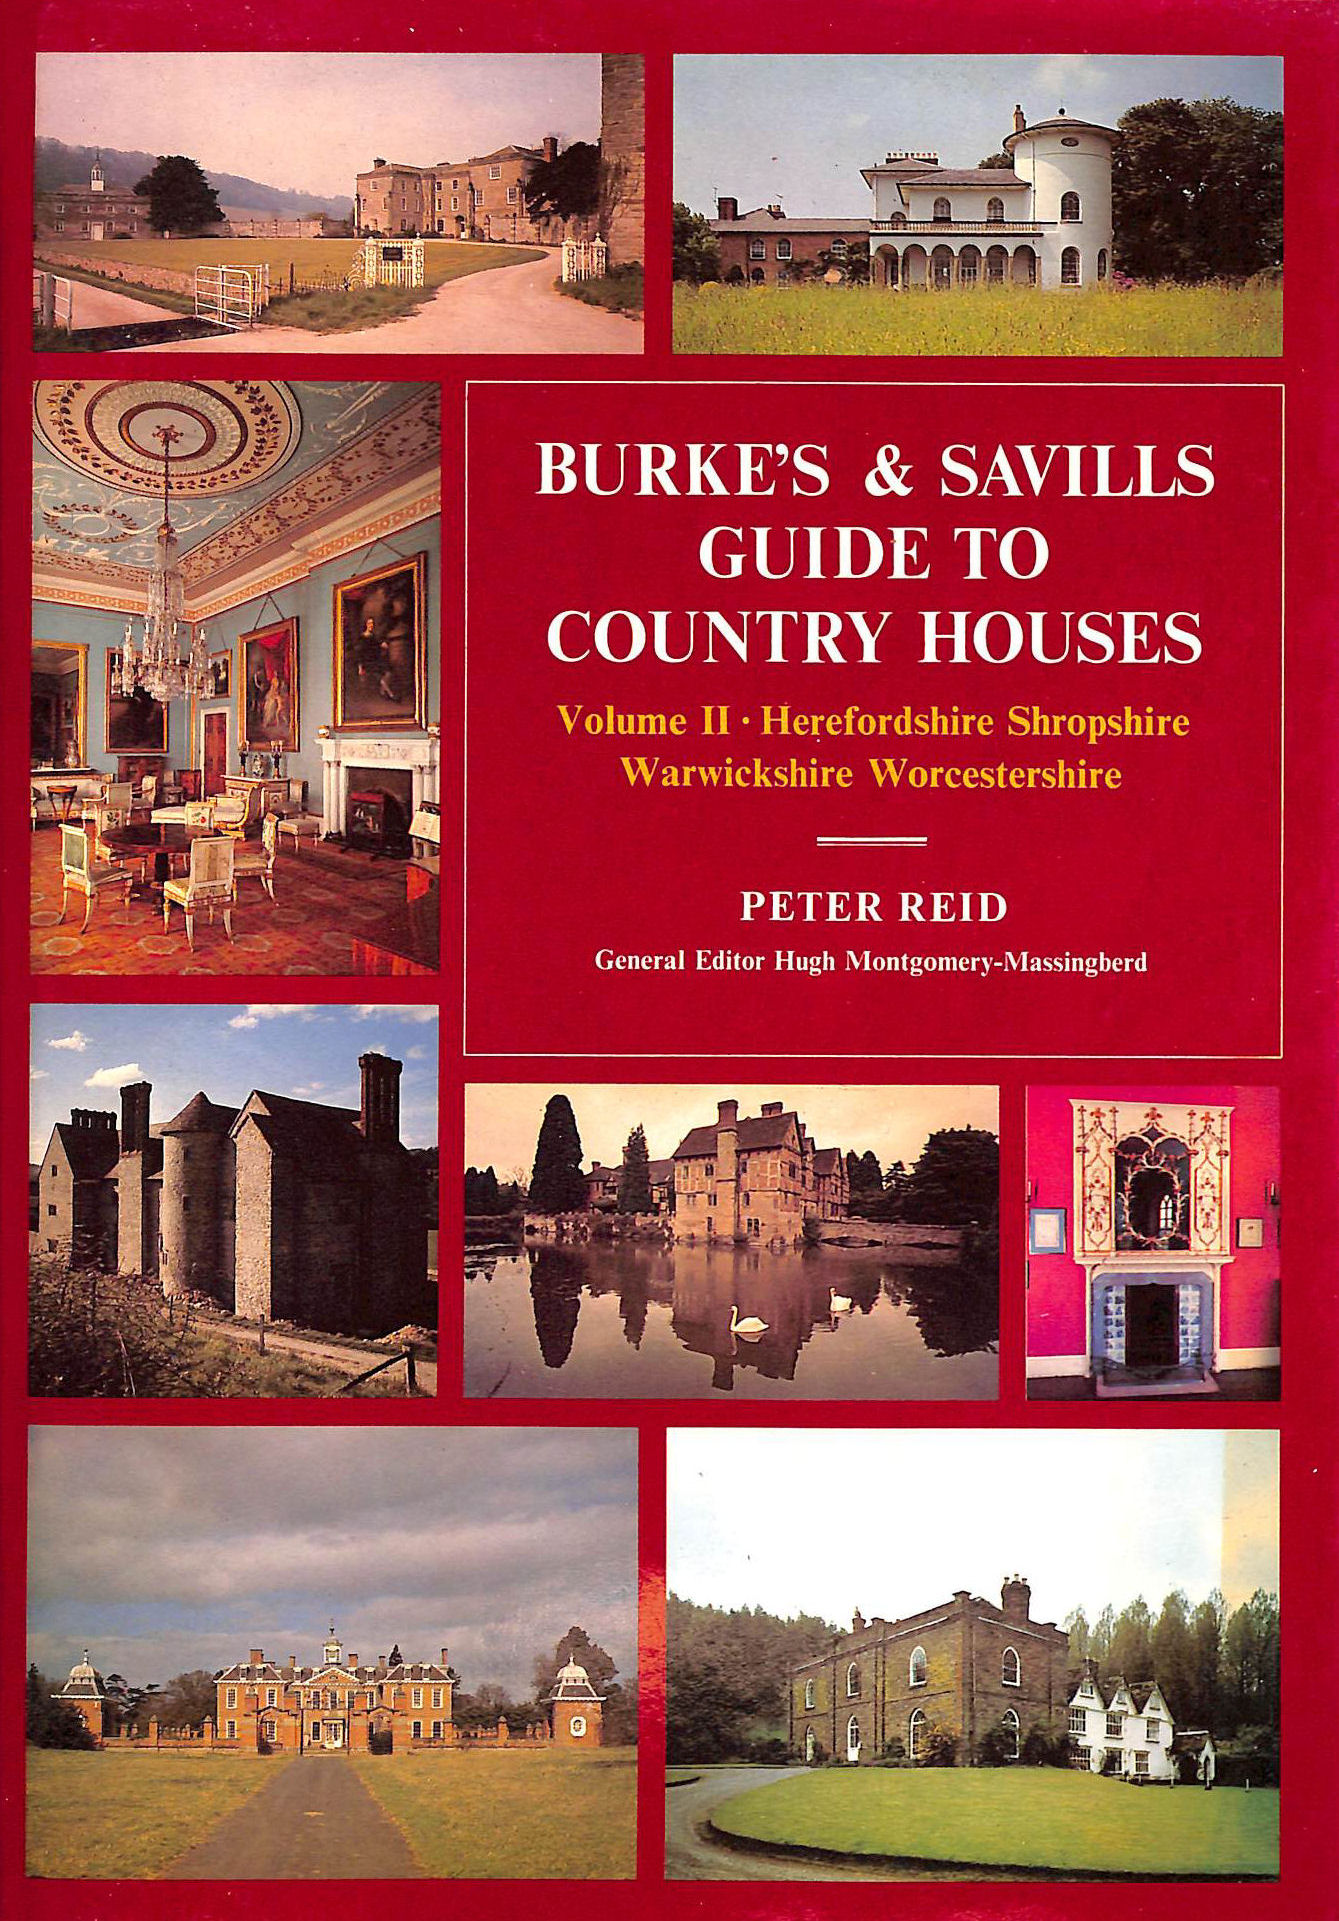 Image for Burke's and Savills Guide to Country Houses vol.2: Herefordshire, Shropshire, Warwickshire and Worcestershire